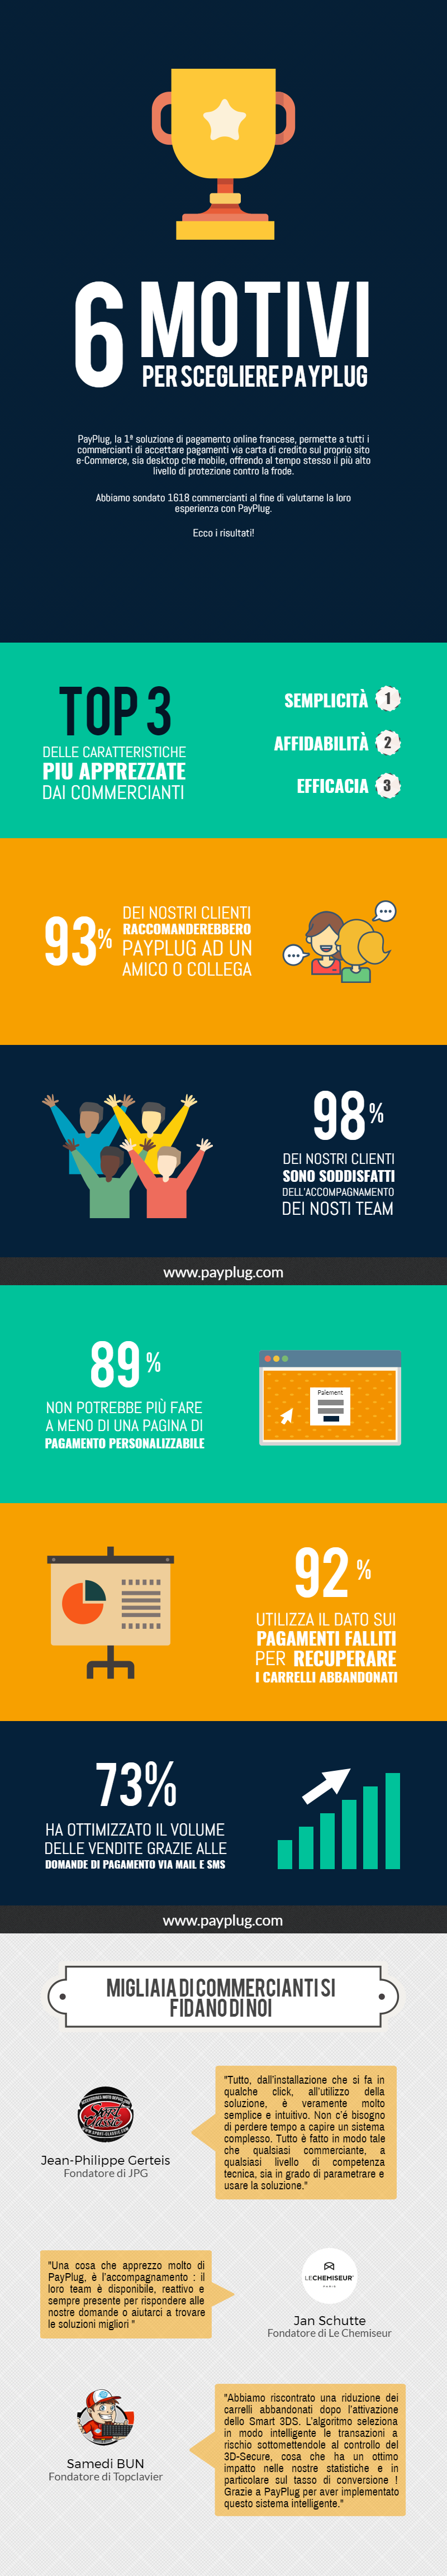 IT201708_blog_payplug_Infographie_6_raisons_choisir_PP_image.png